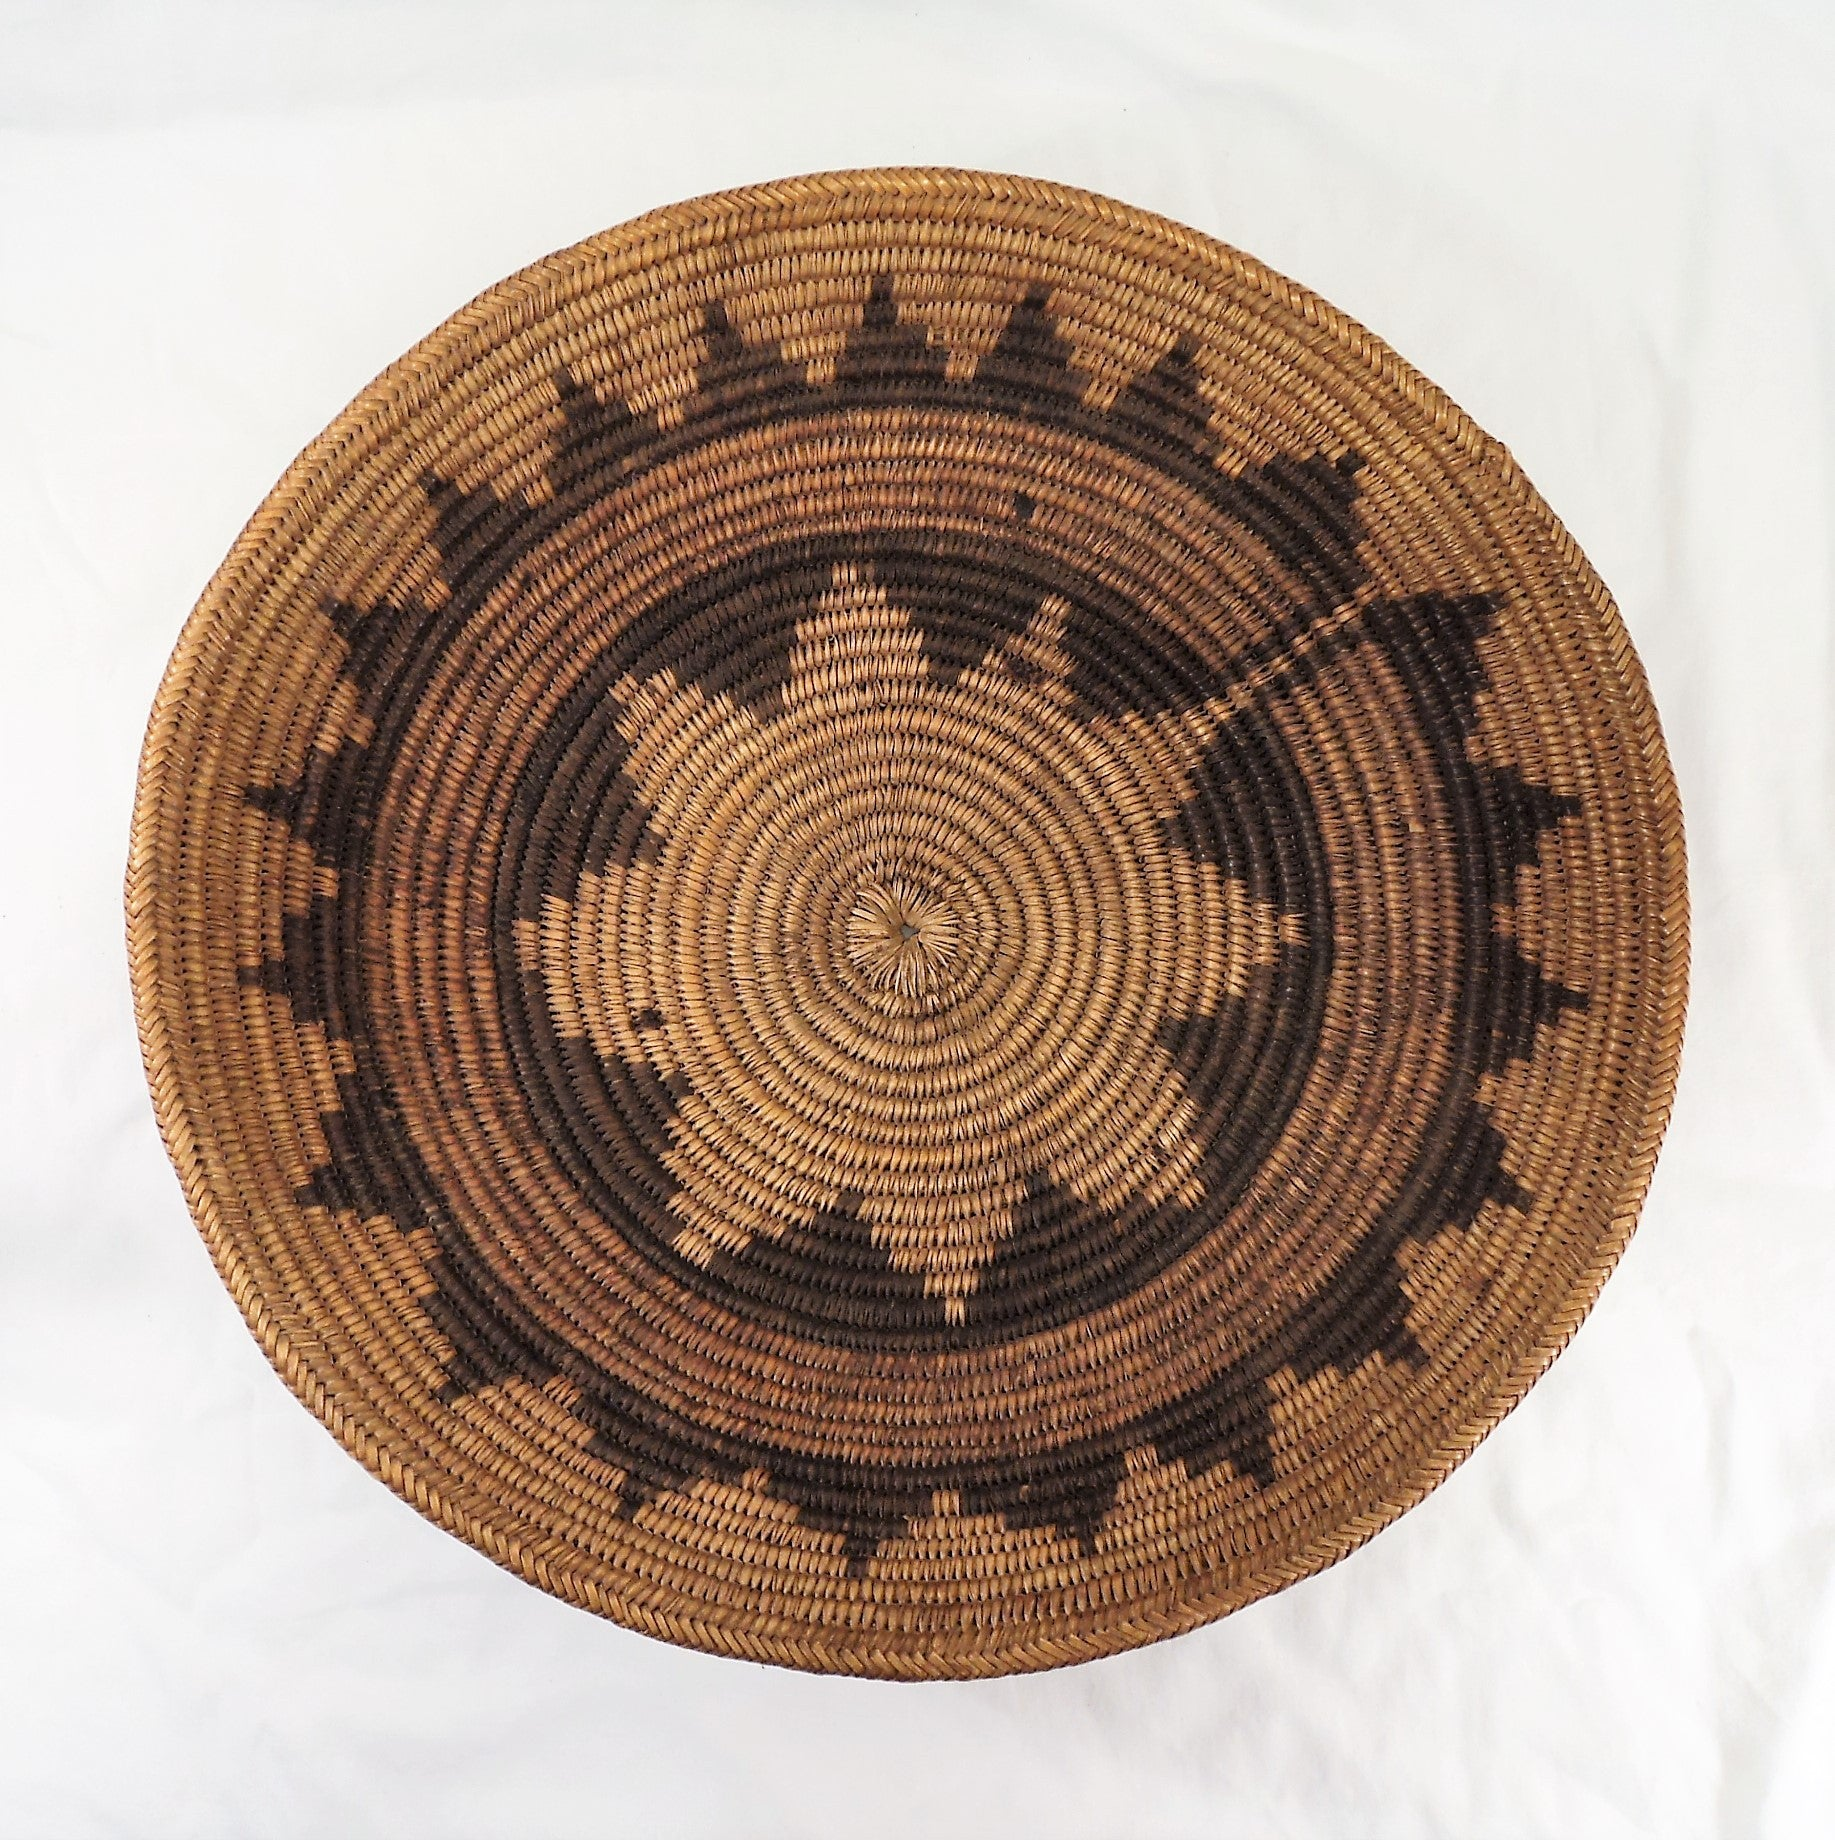 Navajo Coiled Wedding/Ceremonial Basket